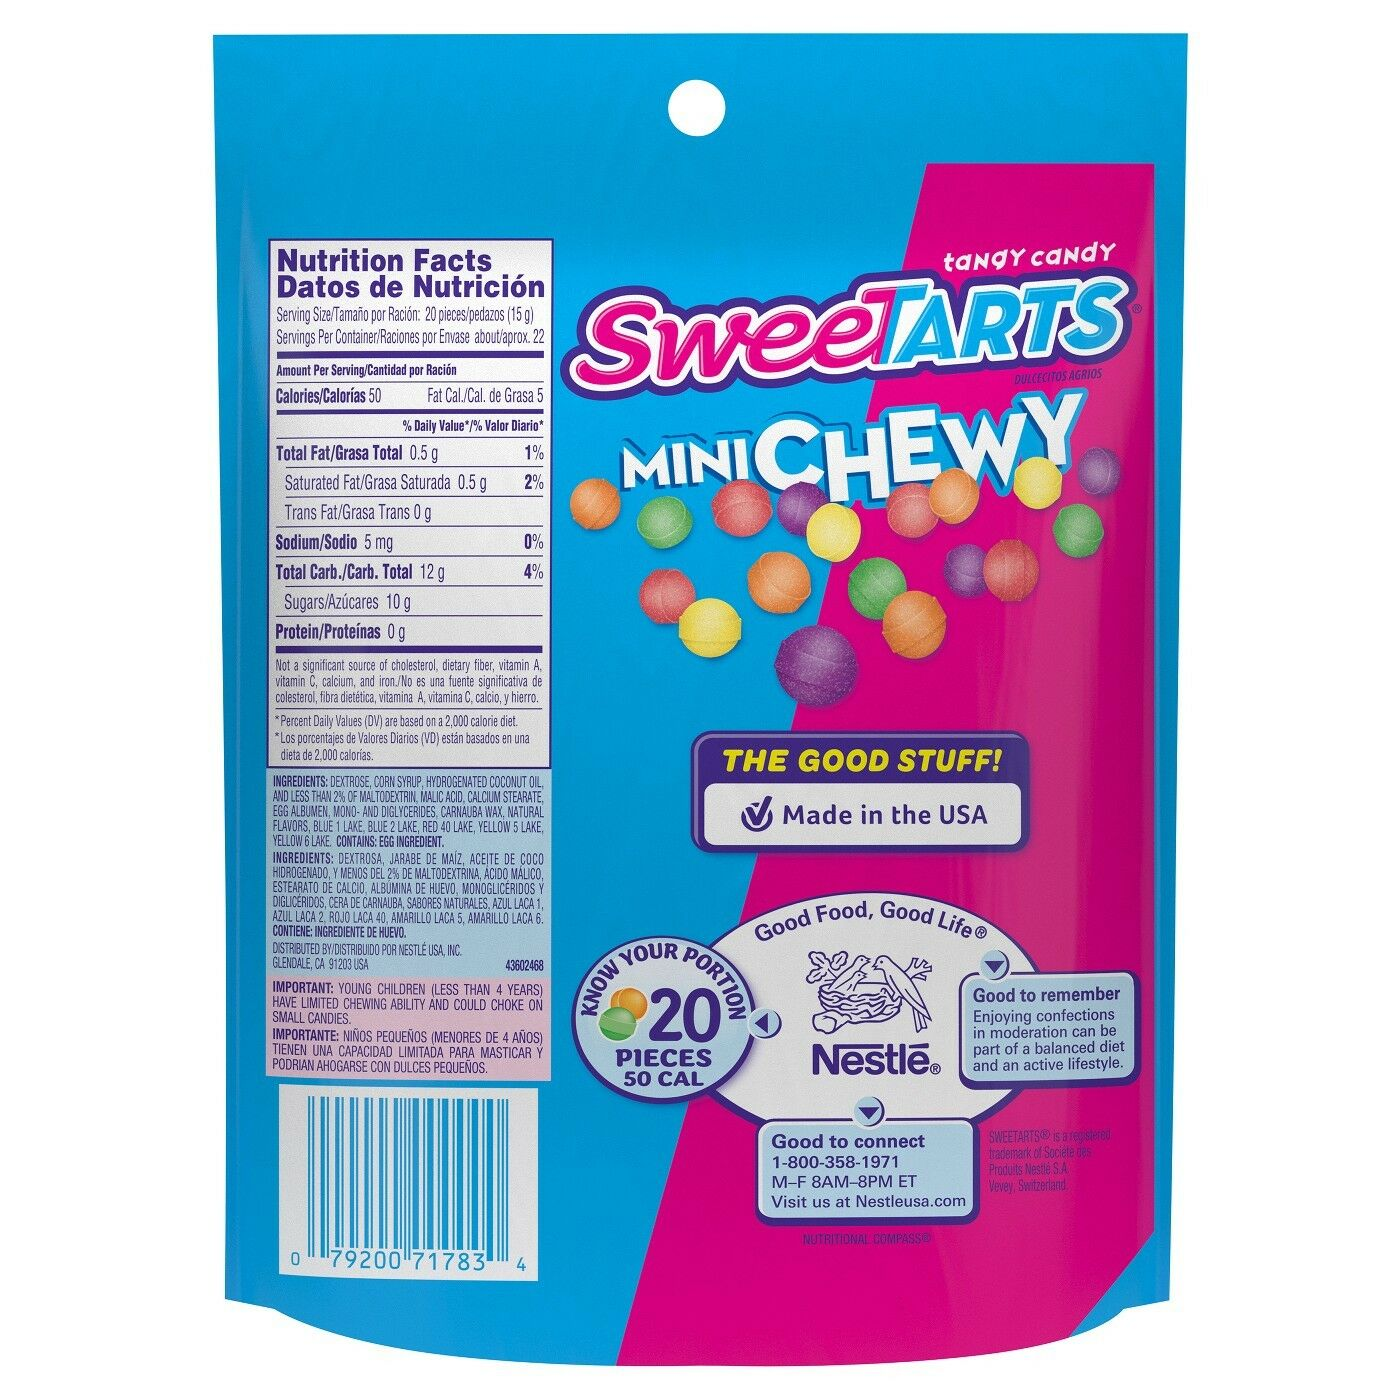 Sweetarts Mini Chewy, 12oz Bag